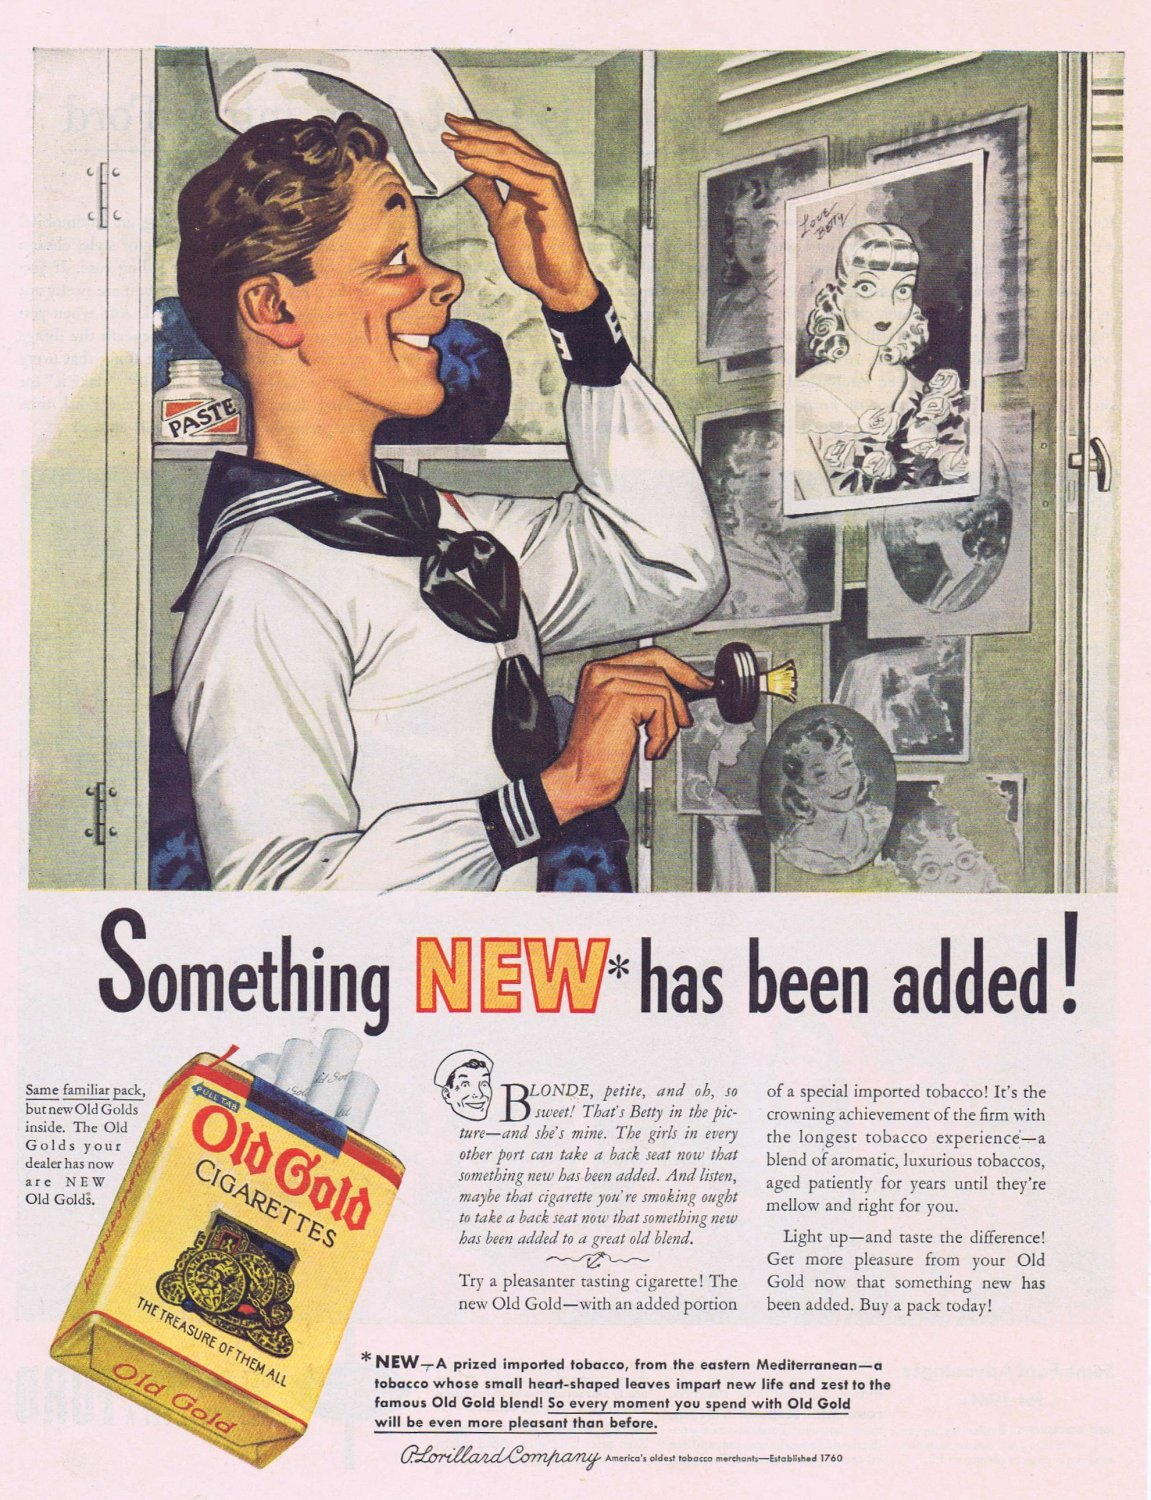 1941 Old Gold Cigarettes Original Vintage Ad with Sailor Admiring the Picture of His Sweetheart